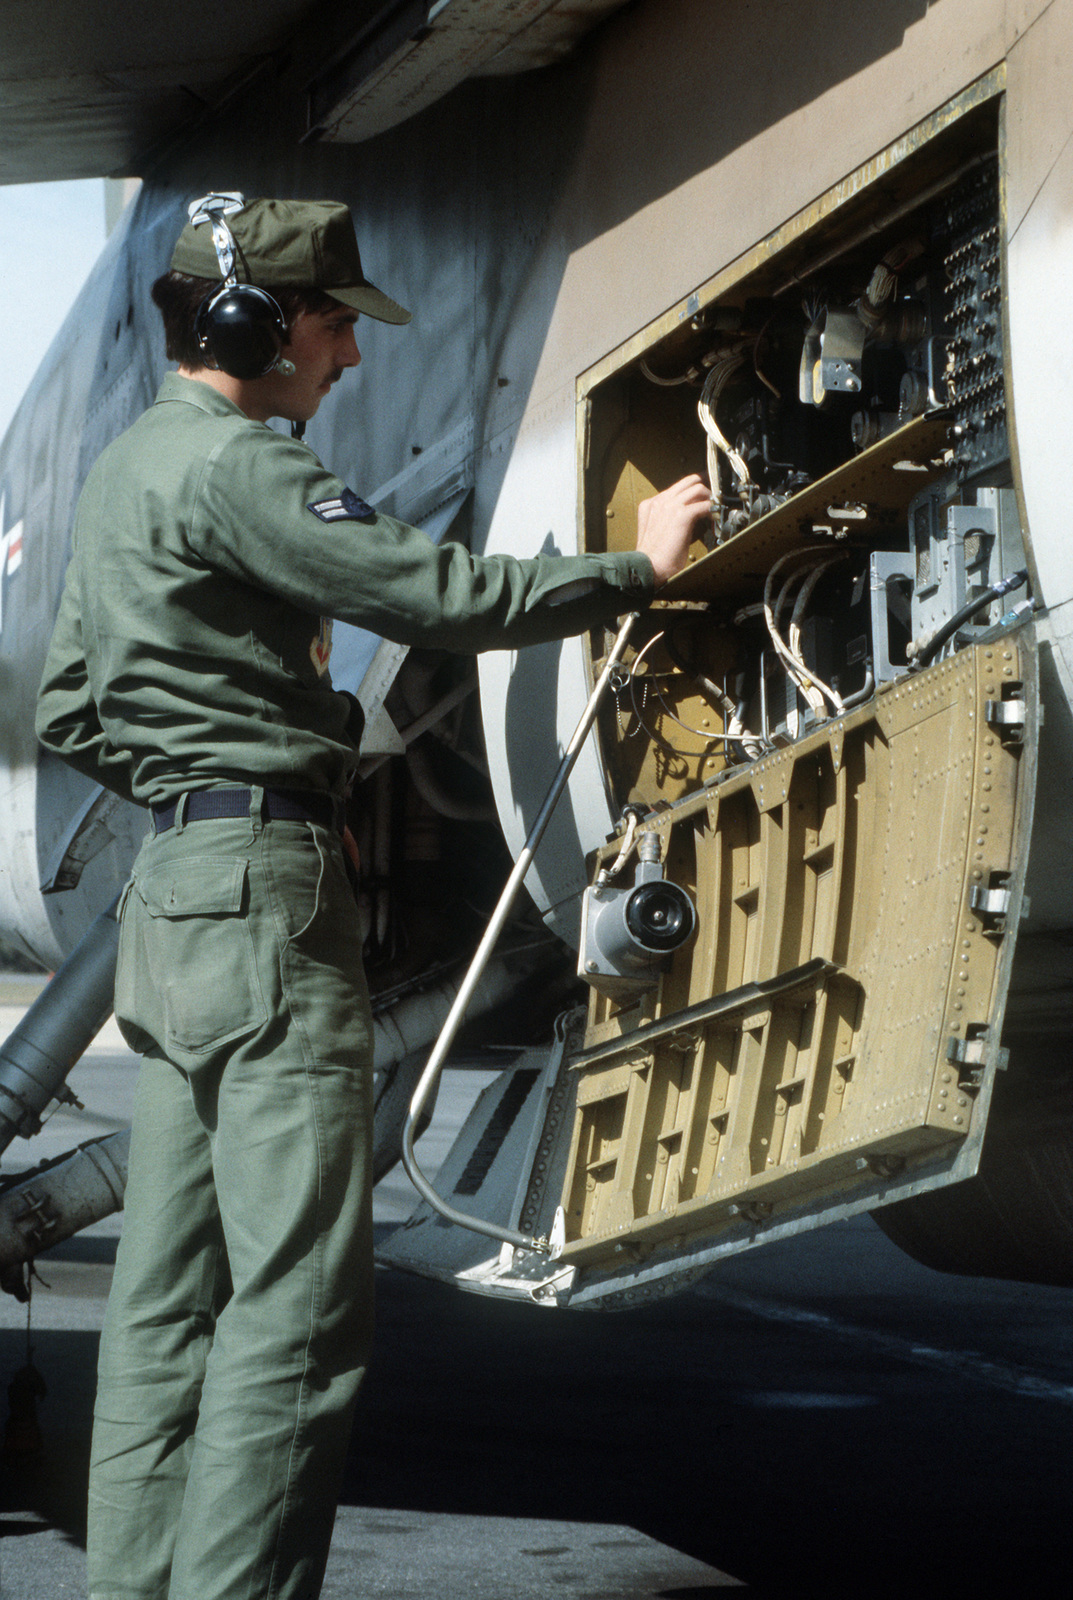 A member of the 355th Aircraft Generation Squadron inspects avionics equipment on a A-7 Corsair II aircraft participating in exercise J-Catch, a joint rotary wing and fixed wing tactics development and capability evaluation